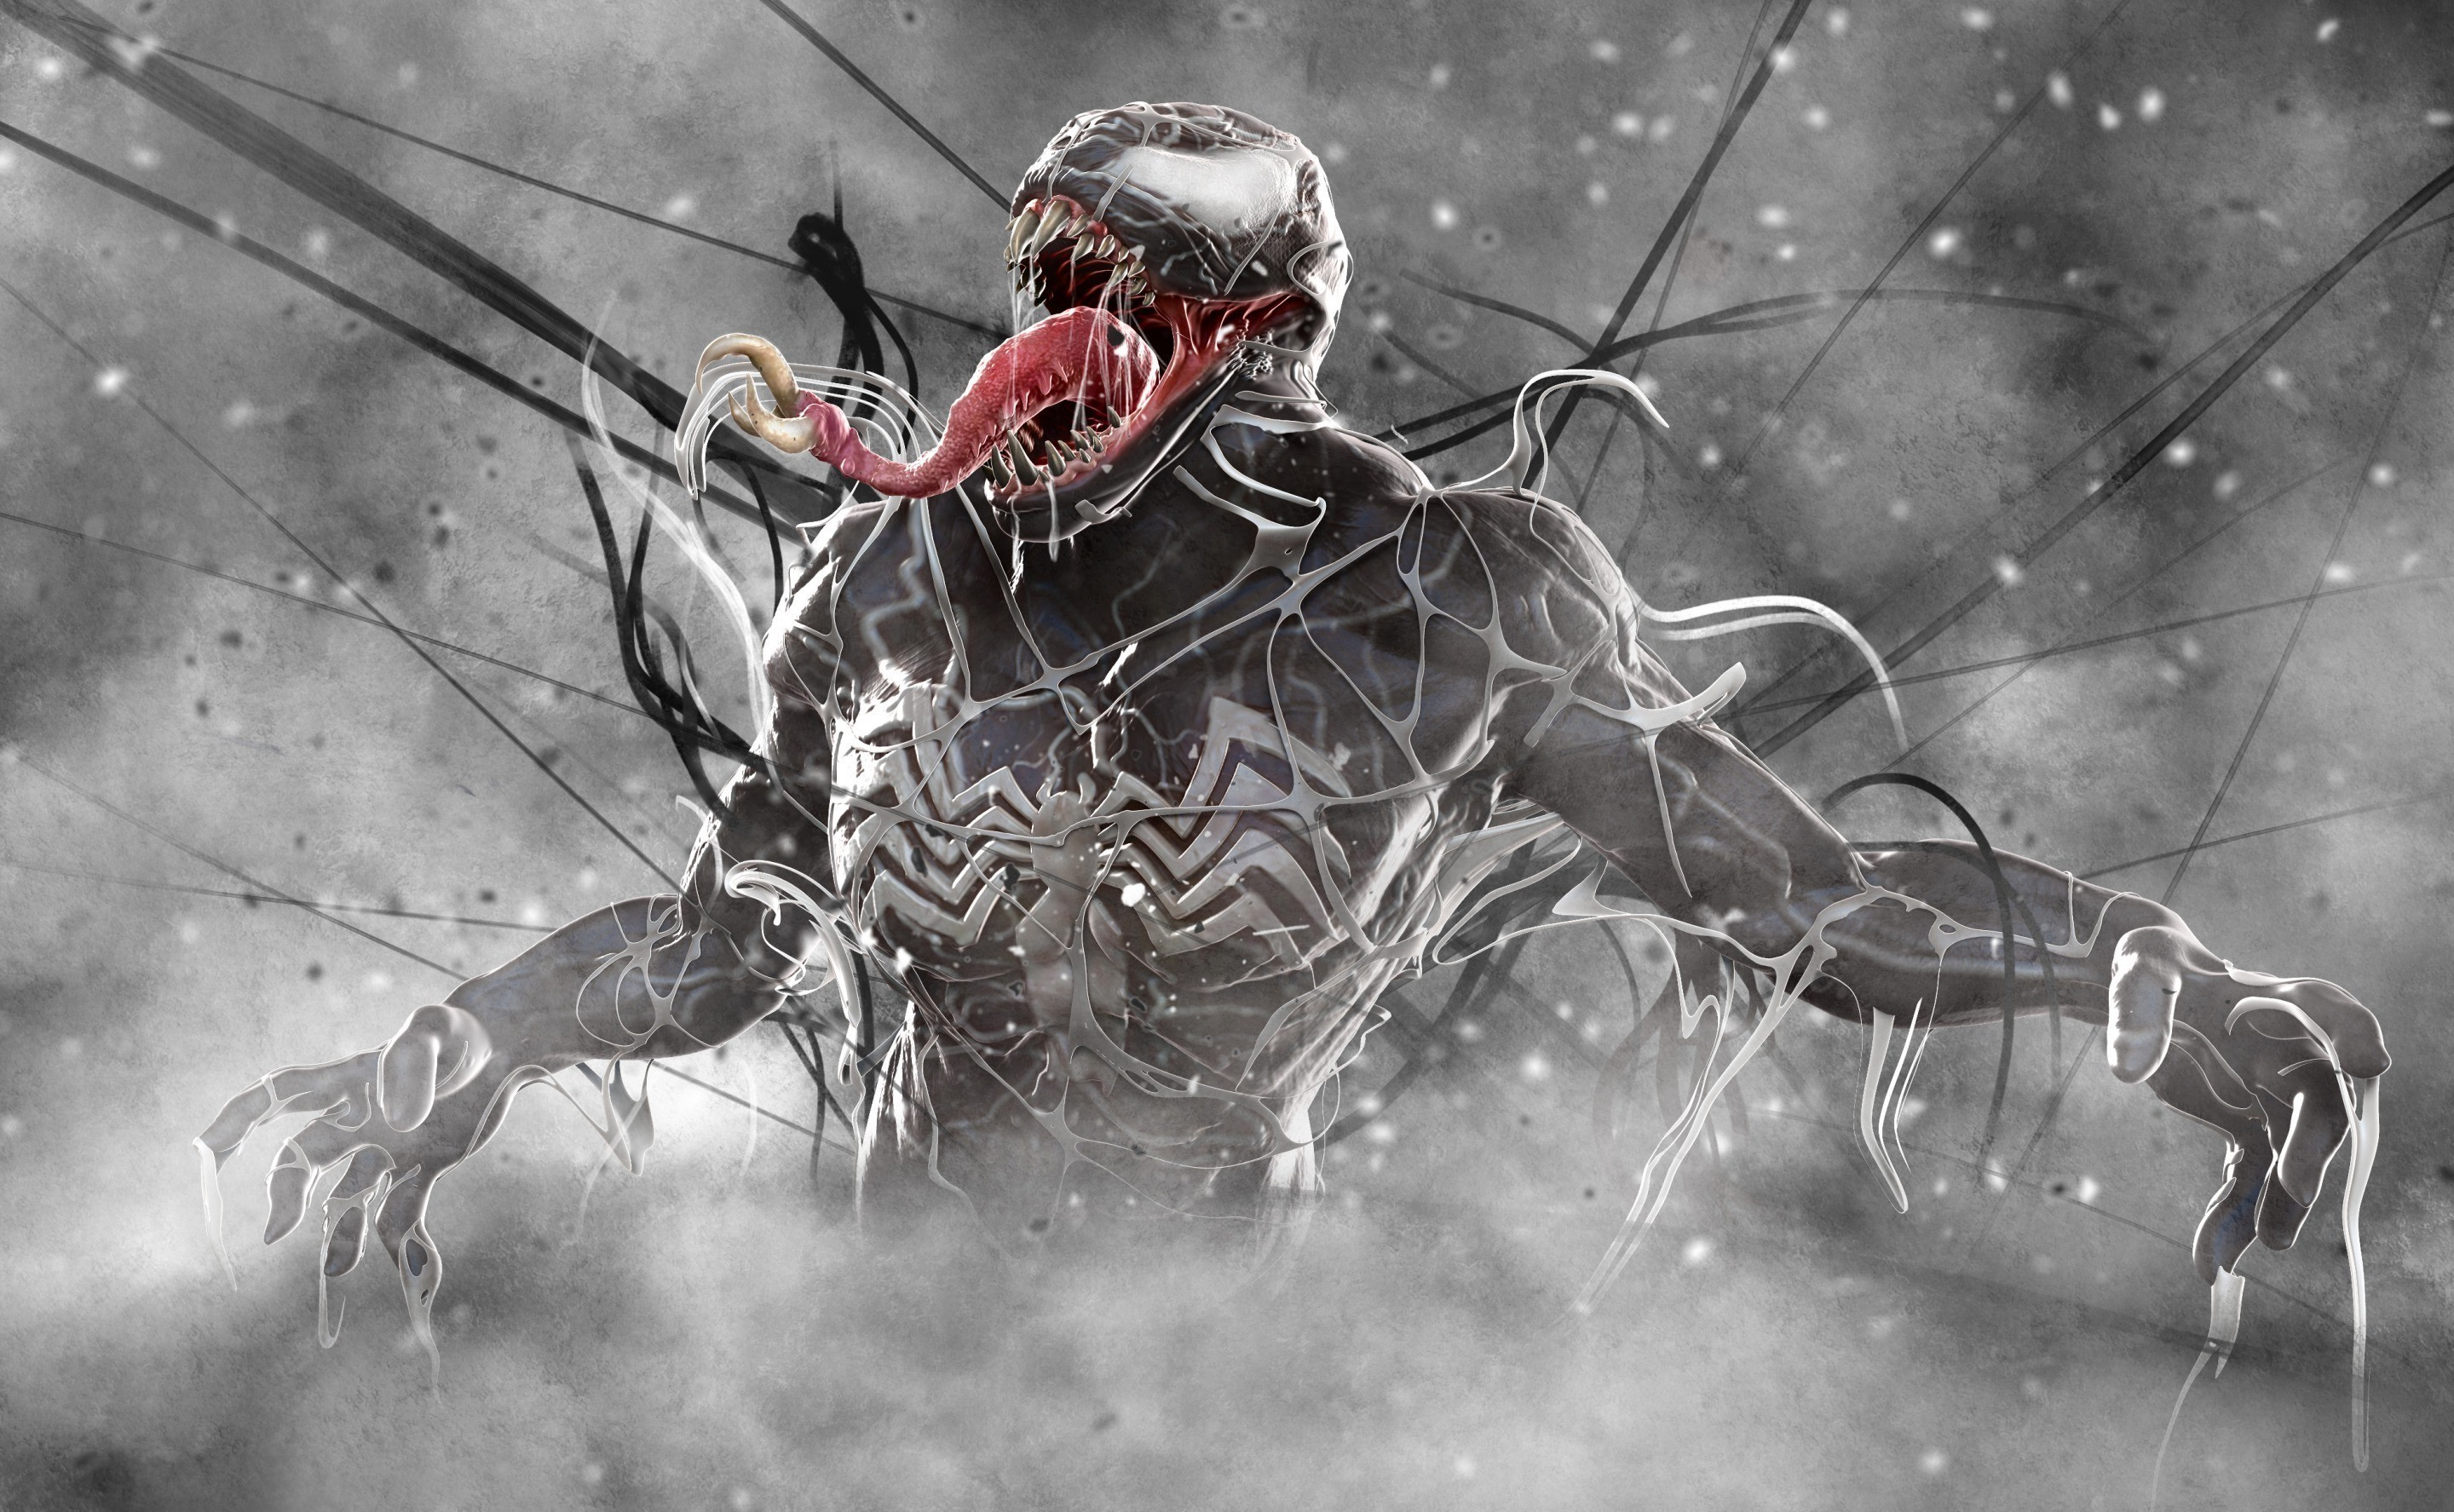 Venom Wallpapers Pictures Images: Venom Band HD Wallpaper ·①